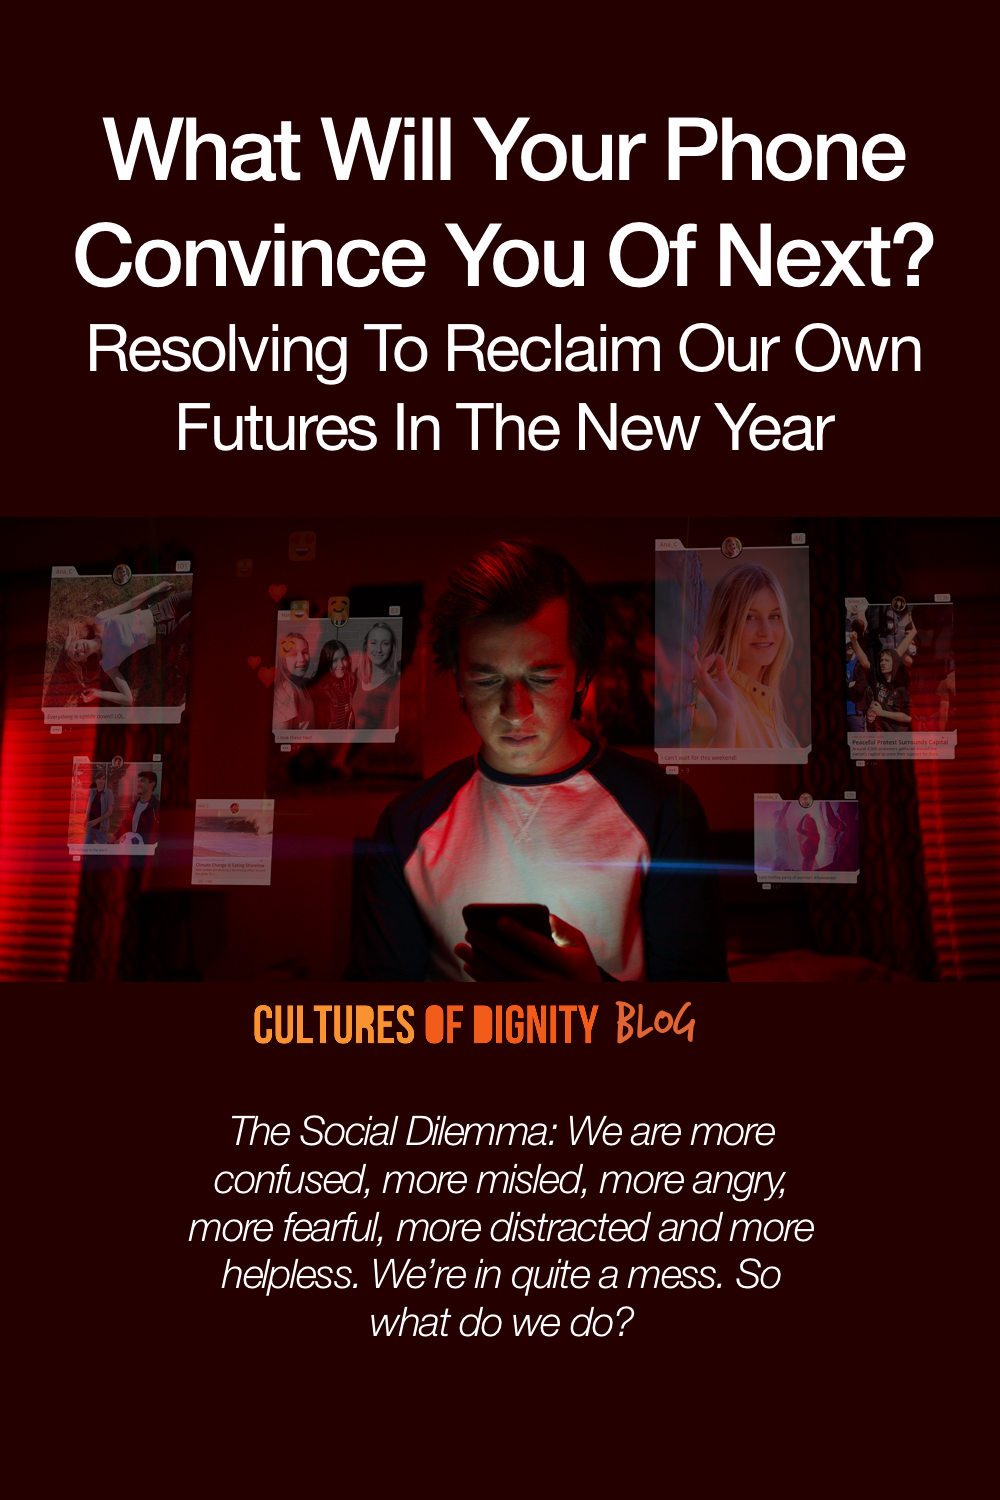 What Will Your Phone Convince You Of Next?  Resolving To Reclaim Our Own Futures In The New Year